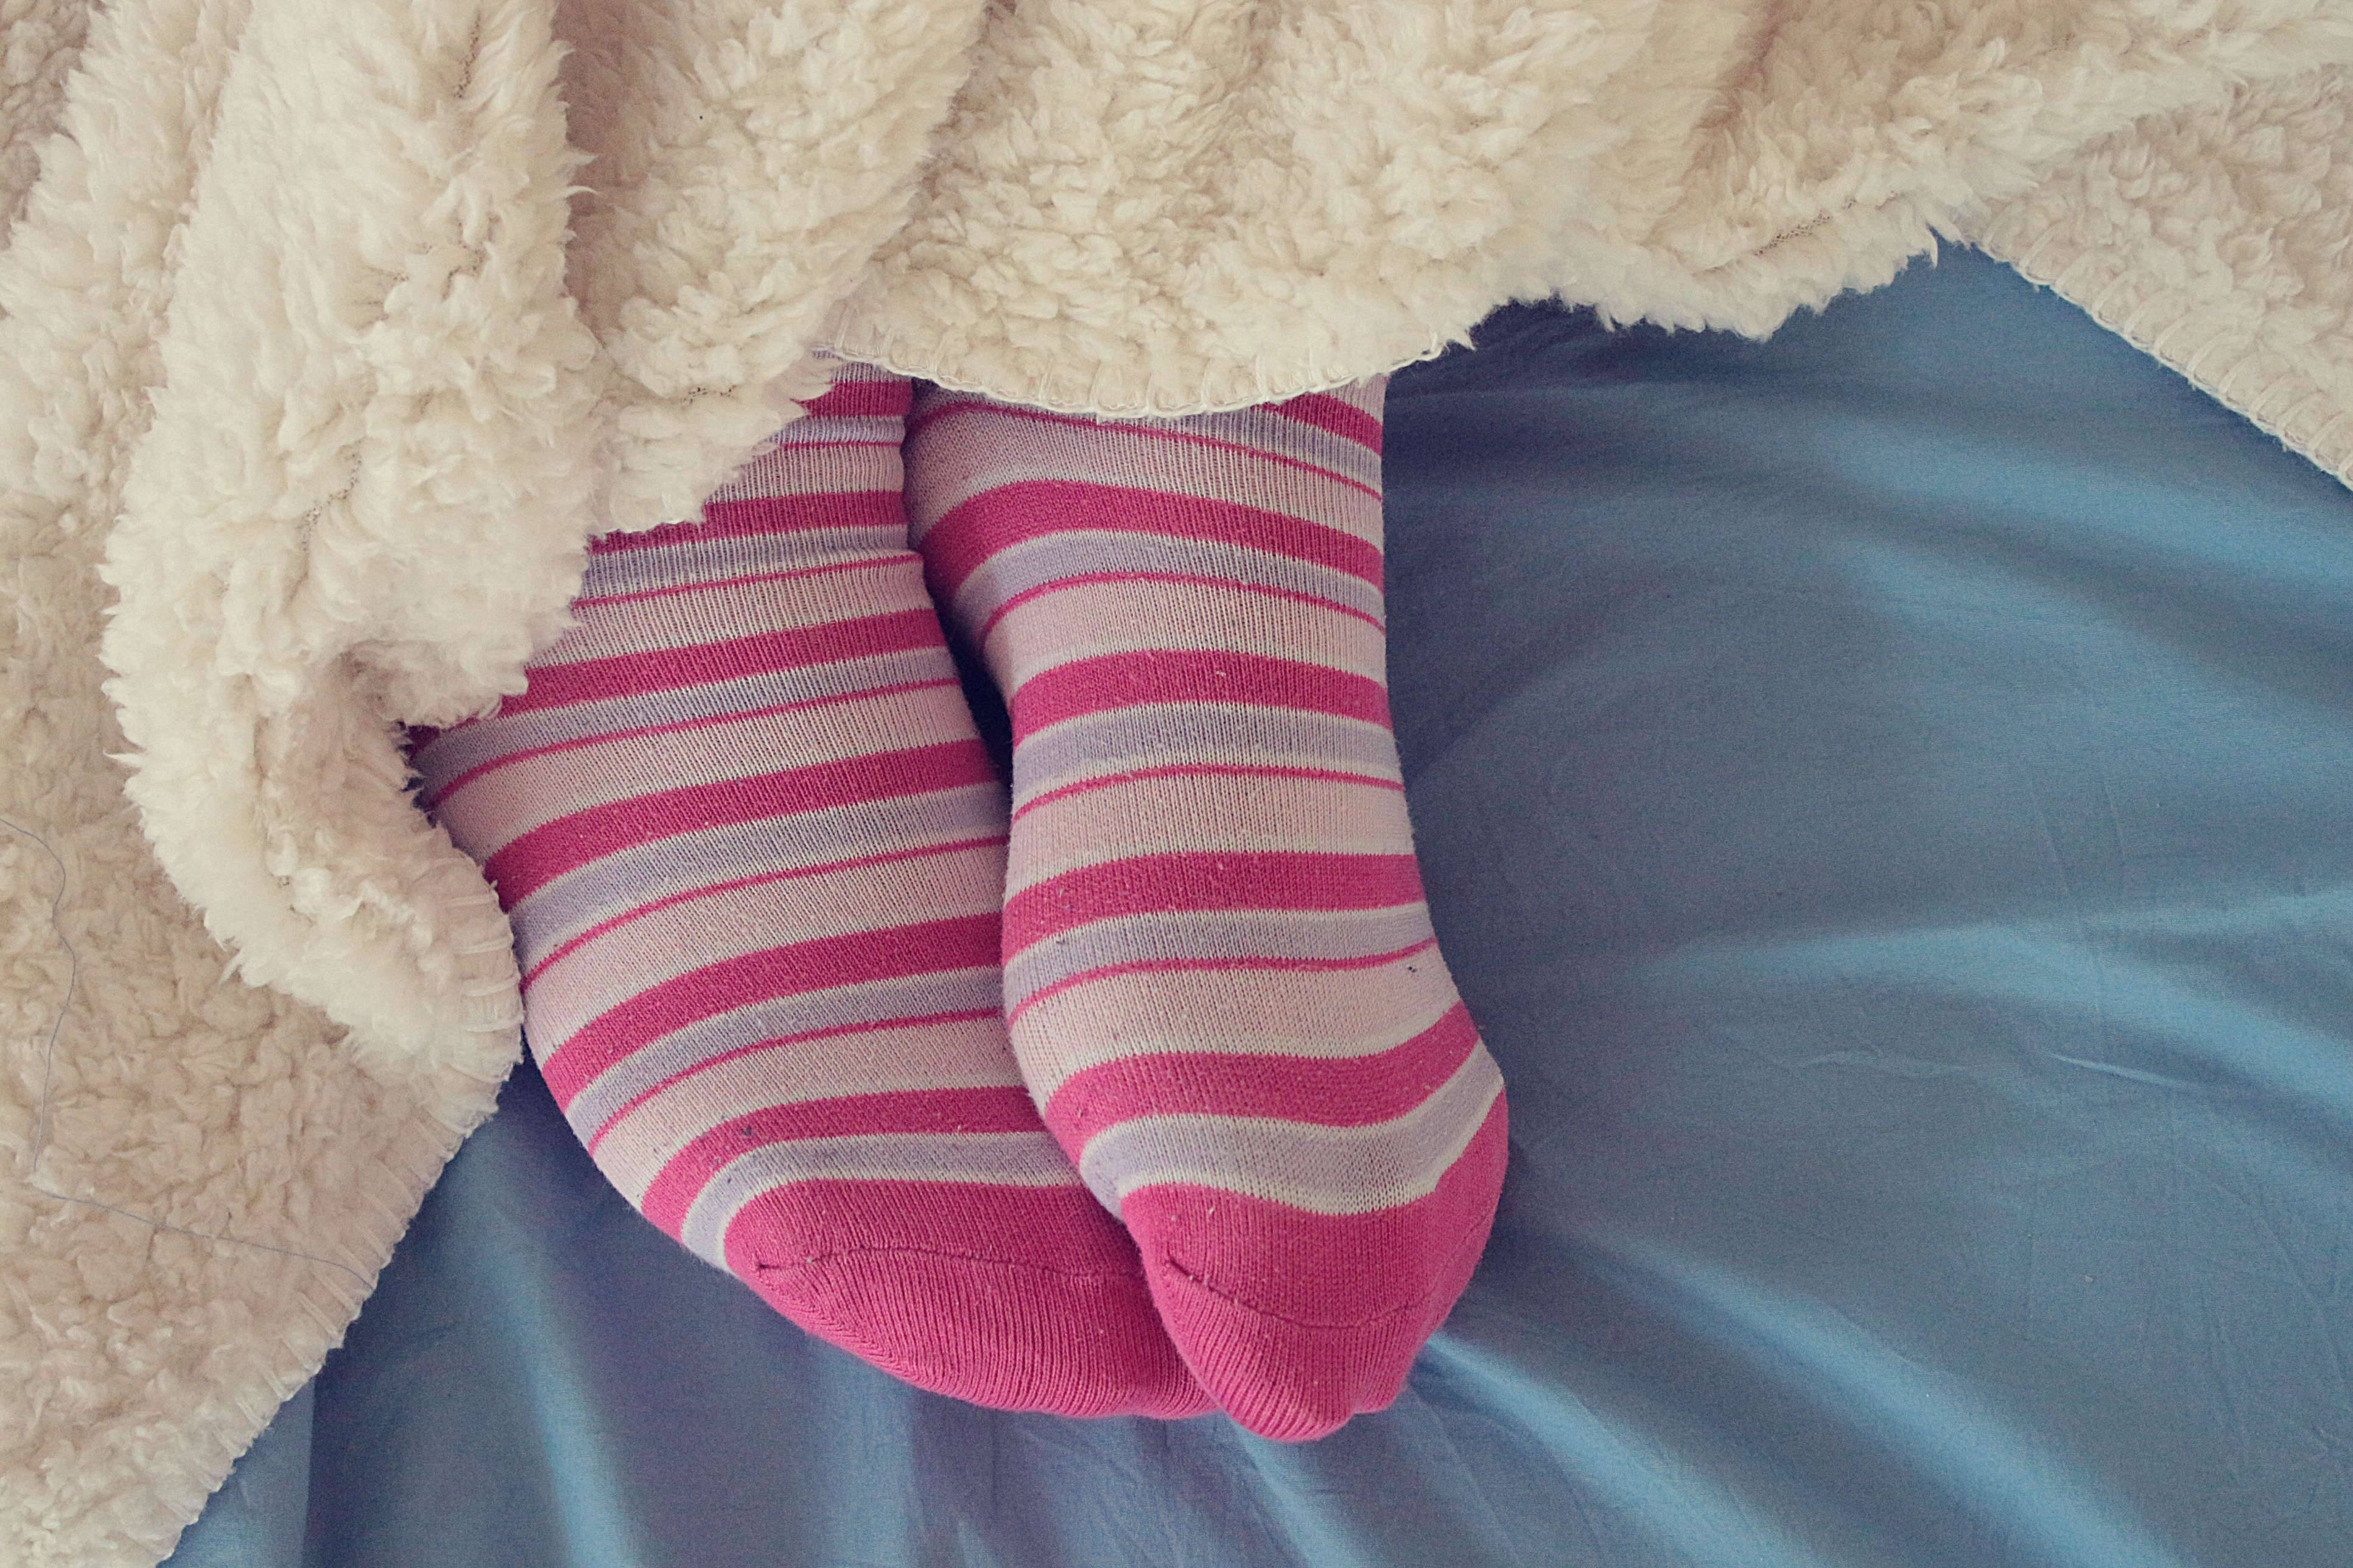 Paresthesia: Why Your Body Parts Tingle and Fall Asleep